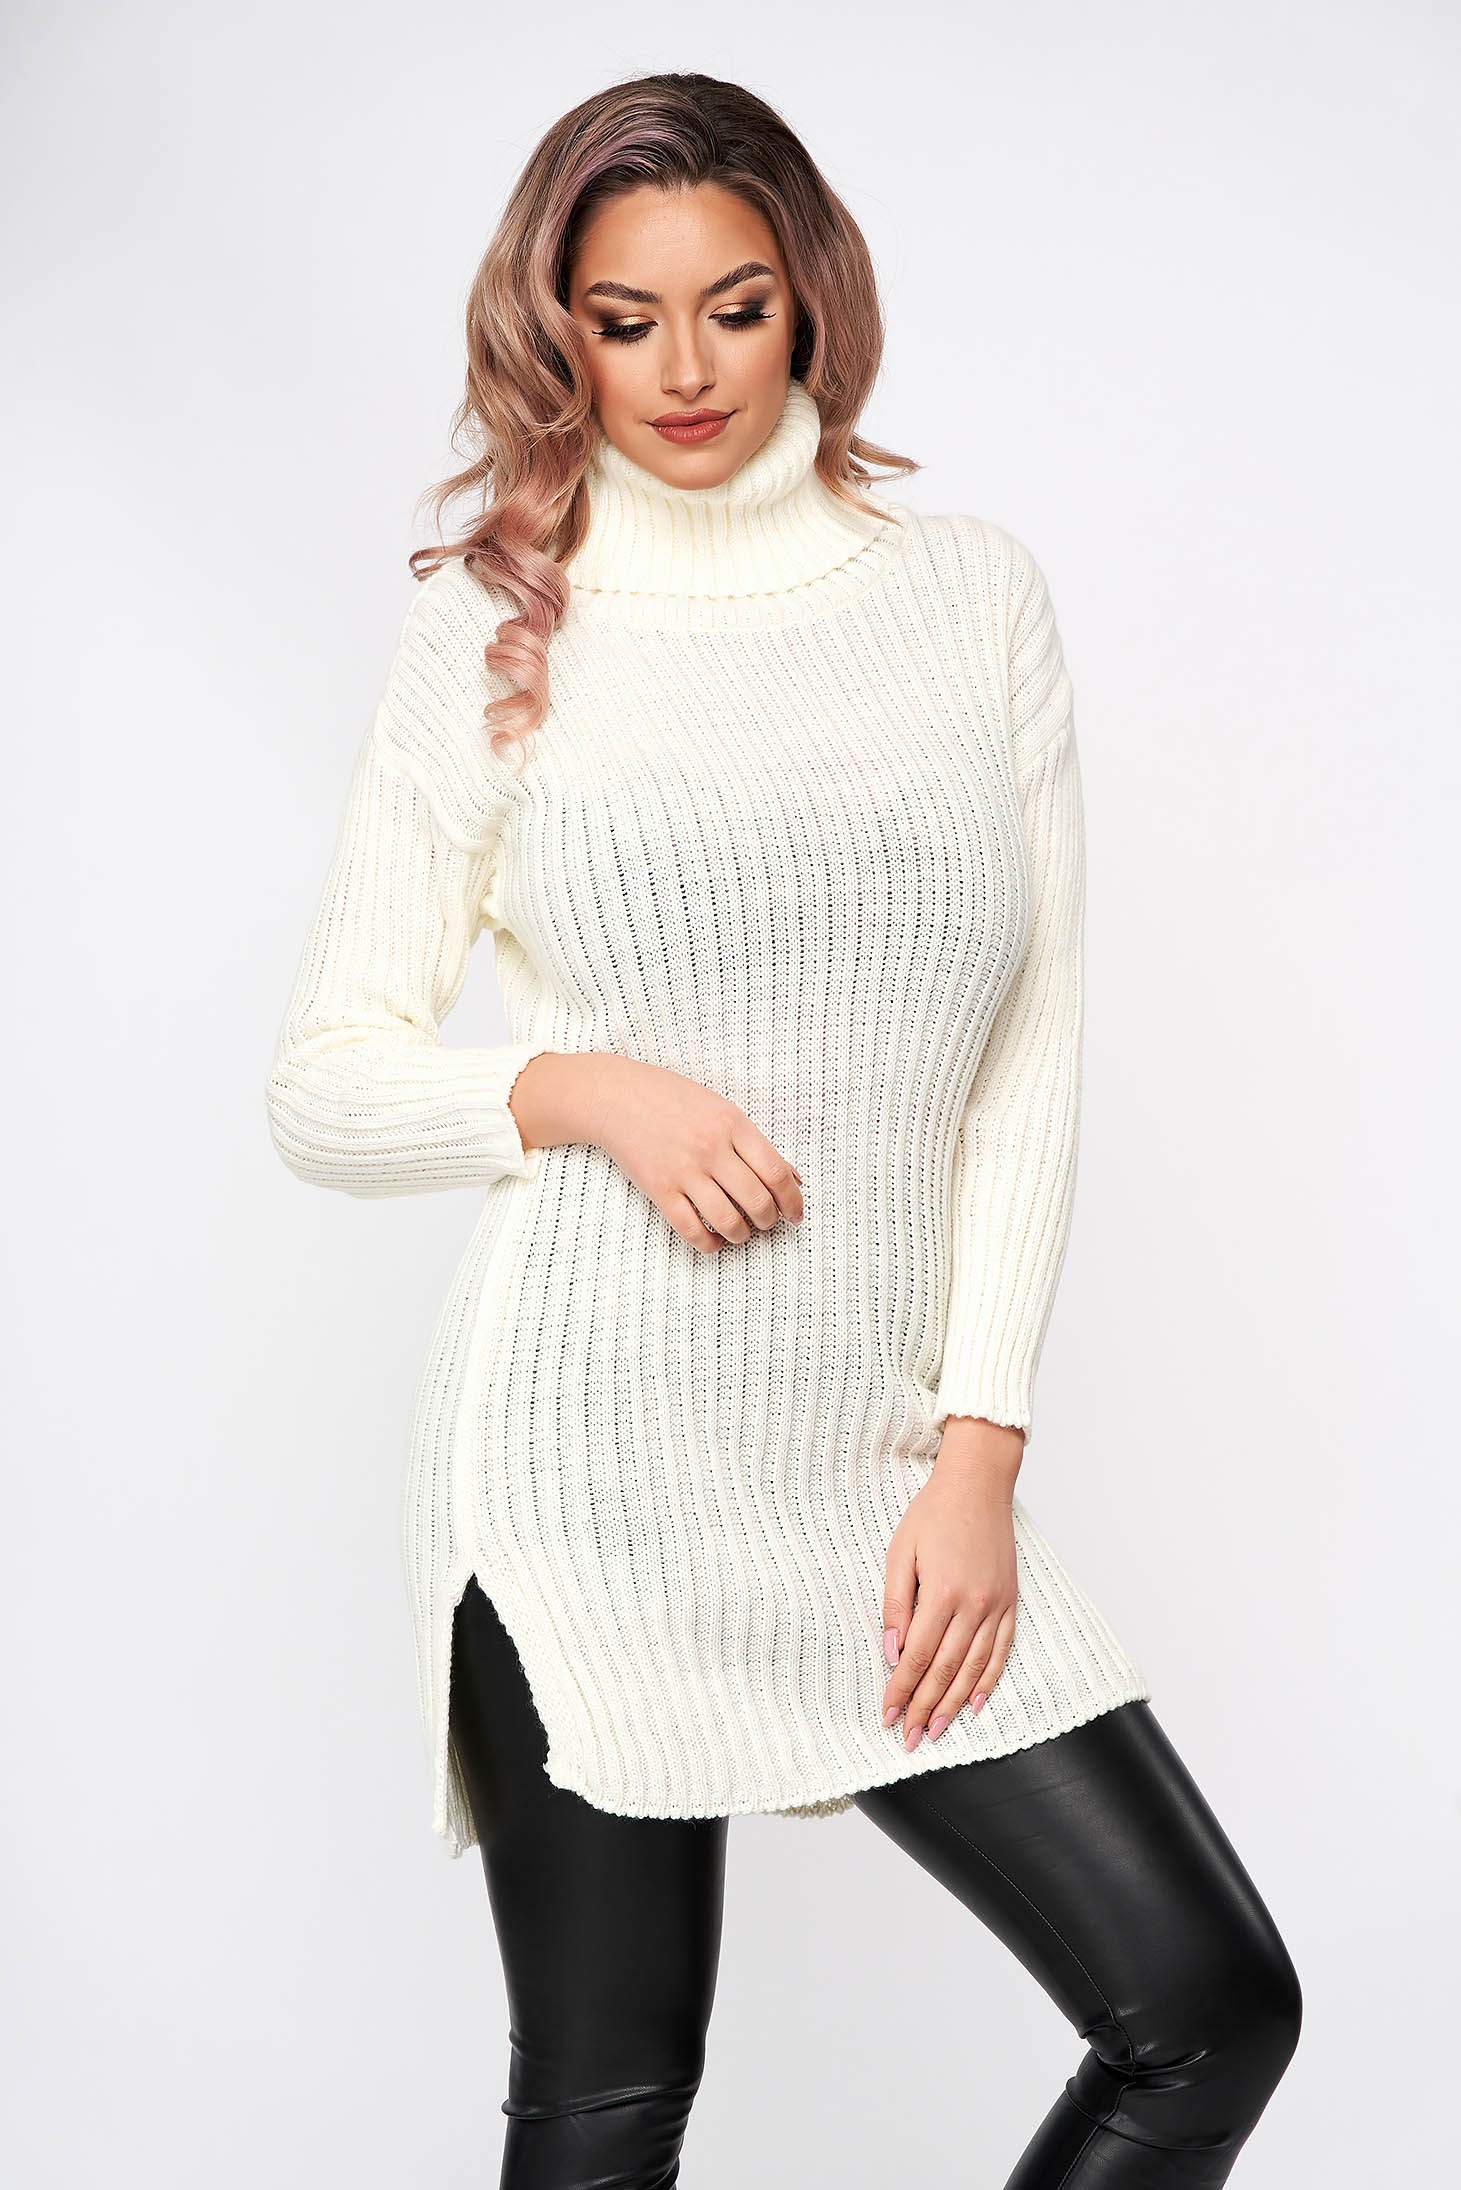 White dress knitted from elastic fabric from striped fabric midi turtleneck flared